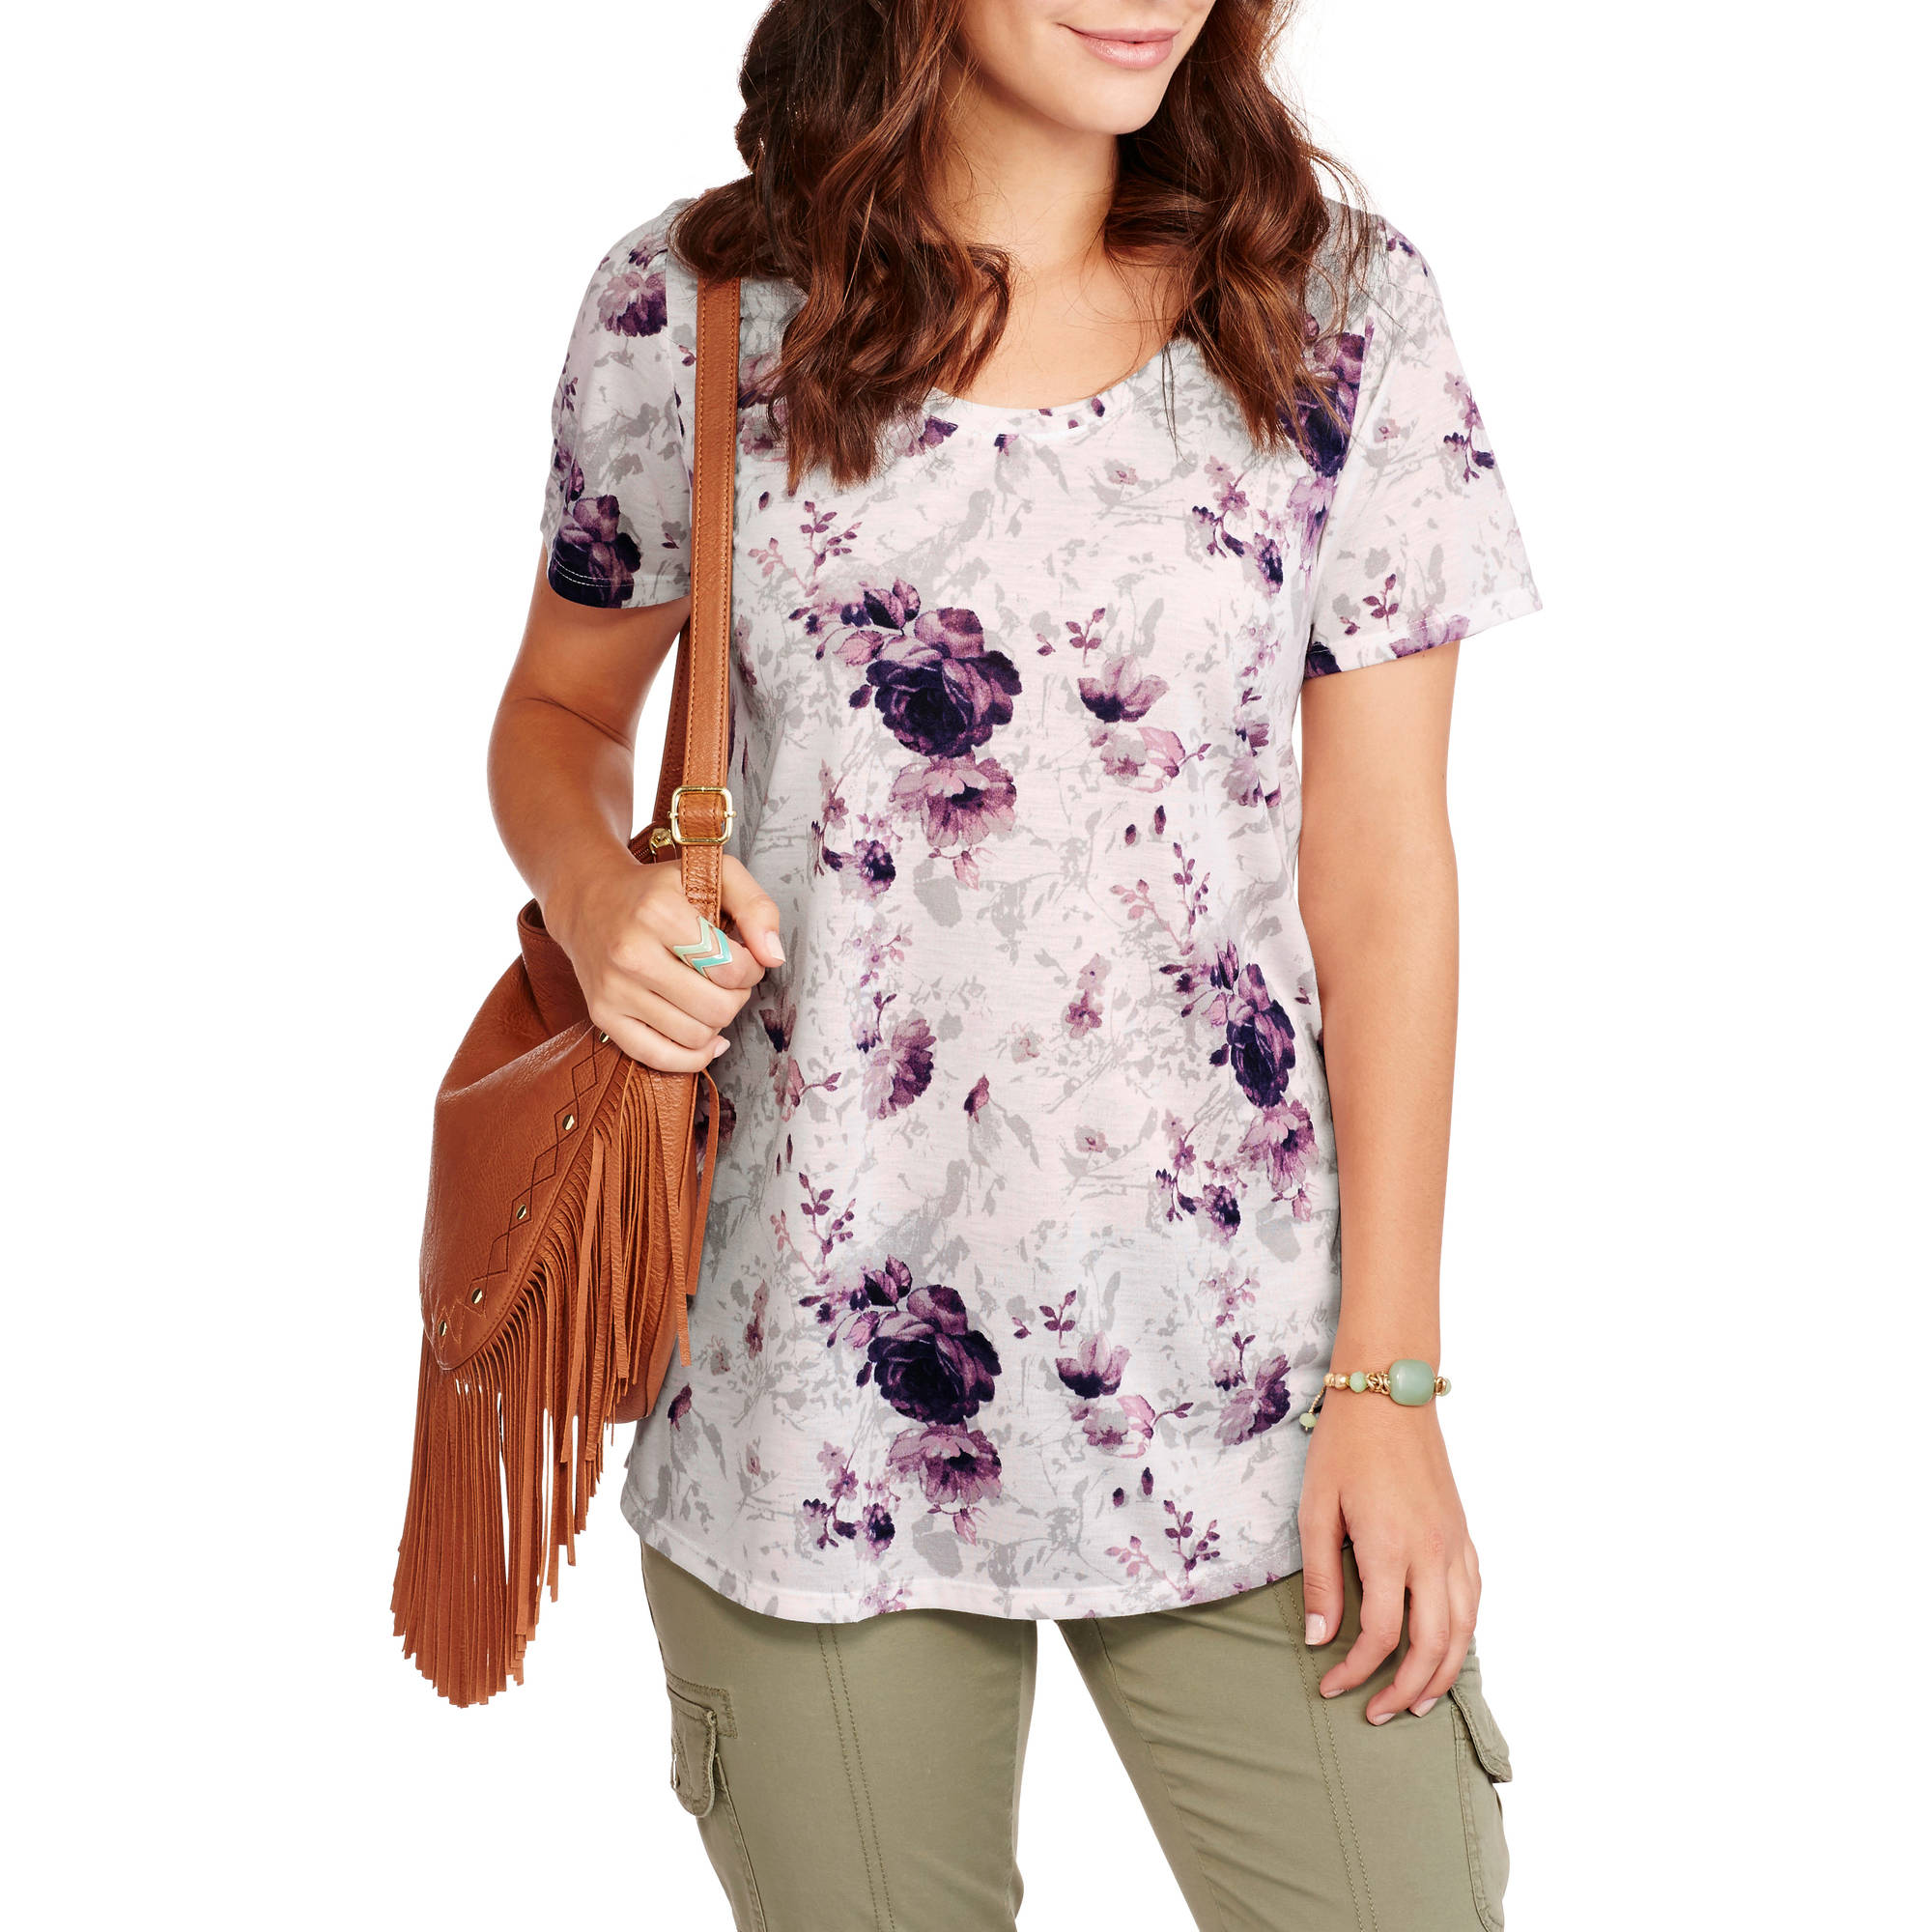 Faded Glory Women's Short Sleeve Scoopneck Floral Print T-Shirt